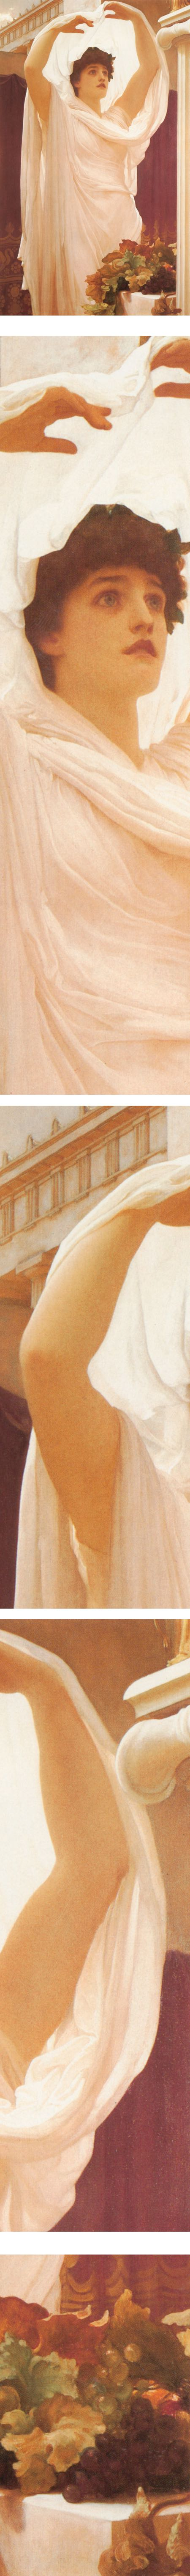 Invocation, oil painting by Frederic Leighton